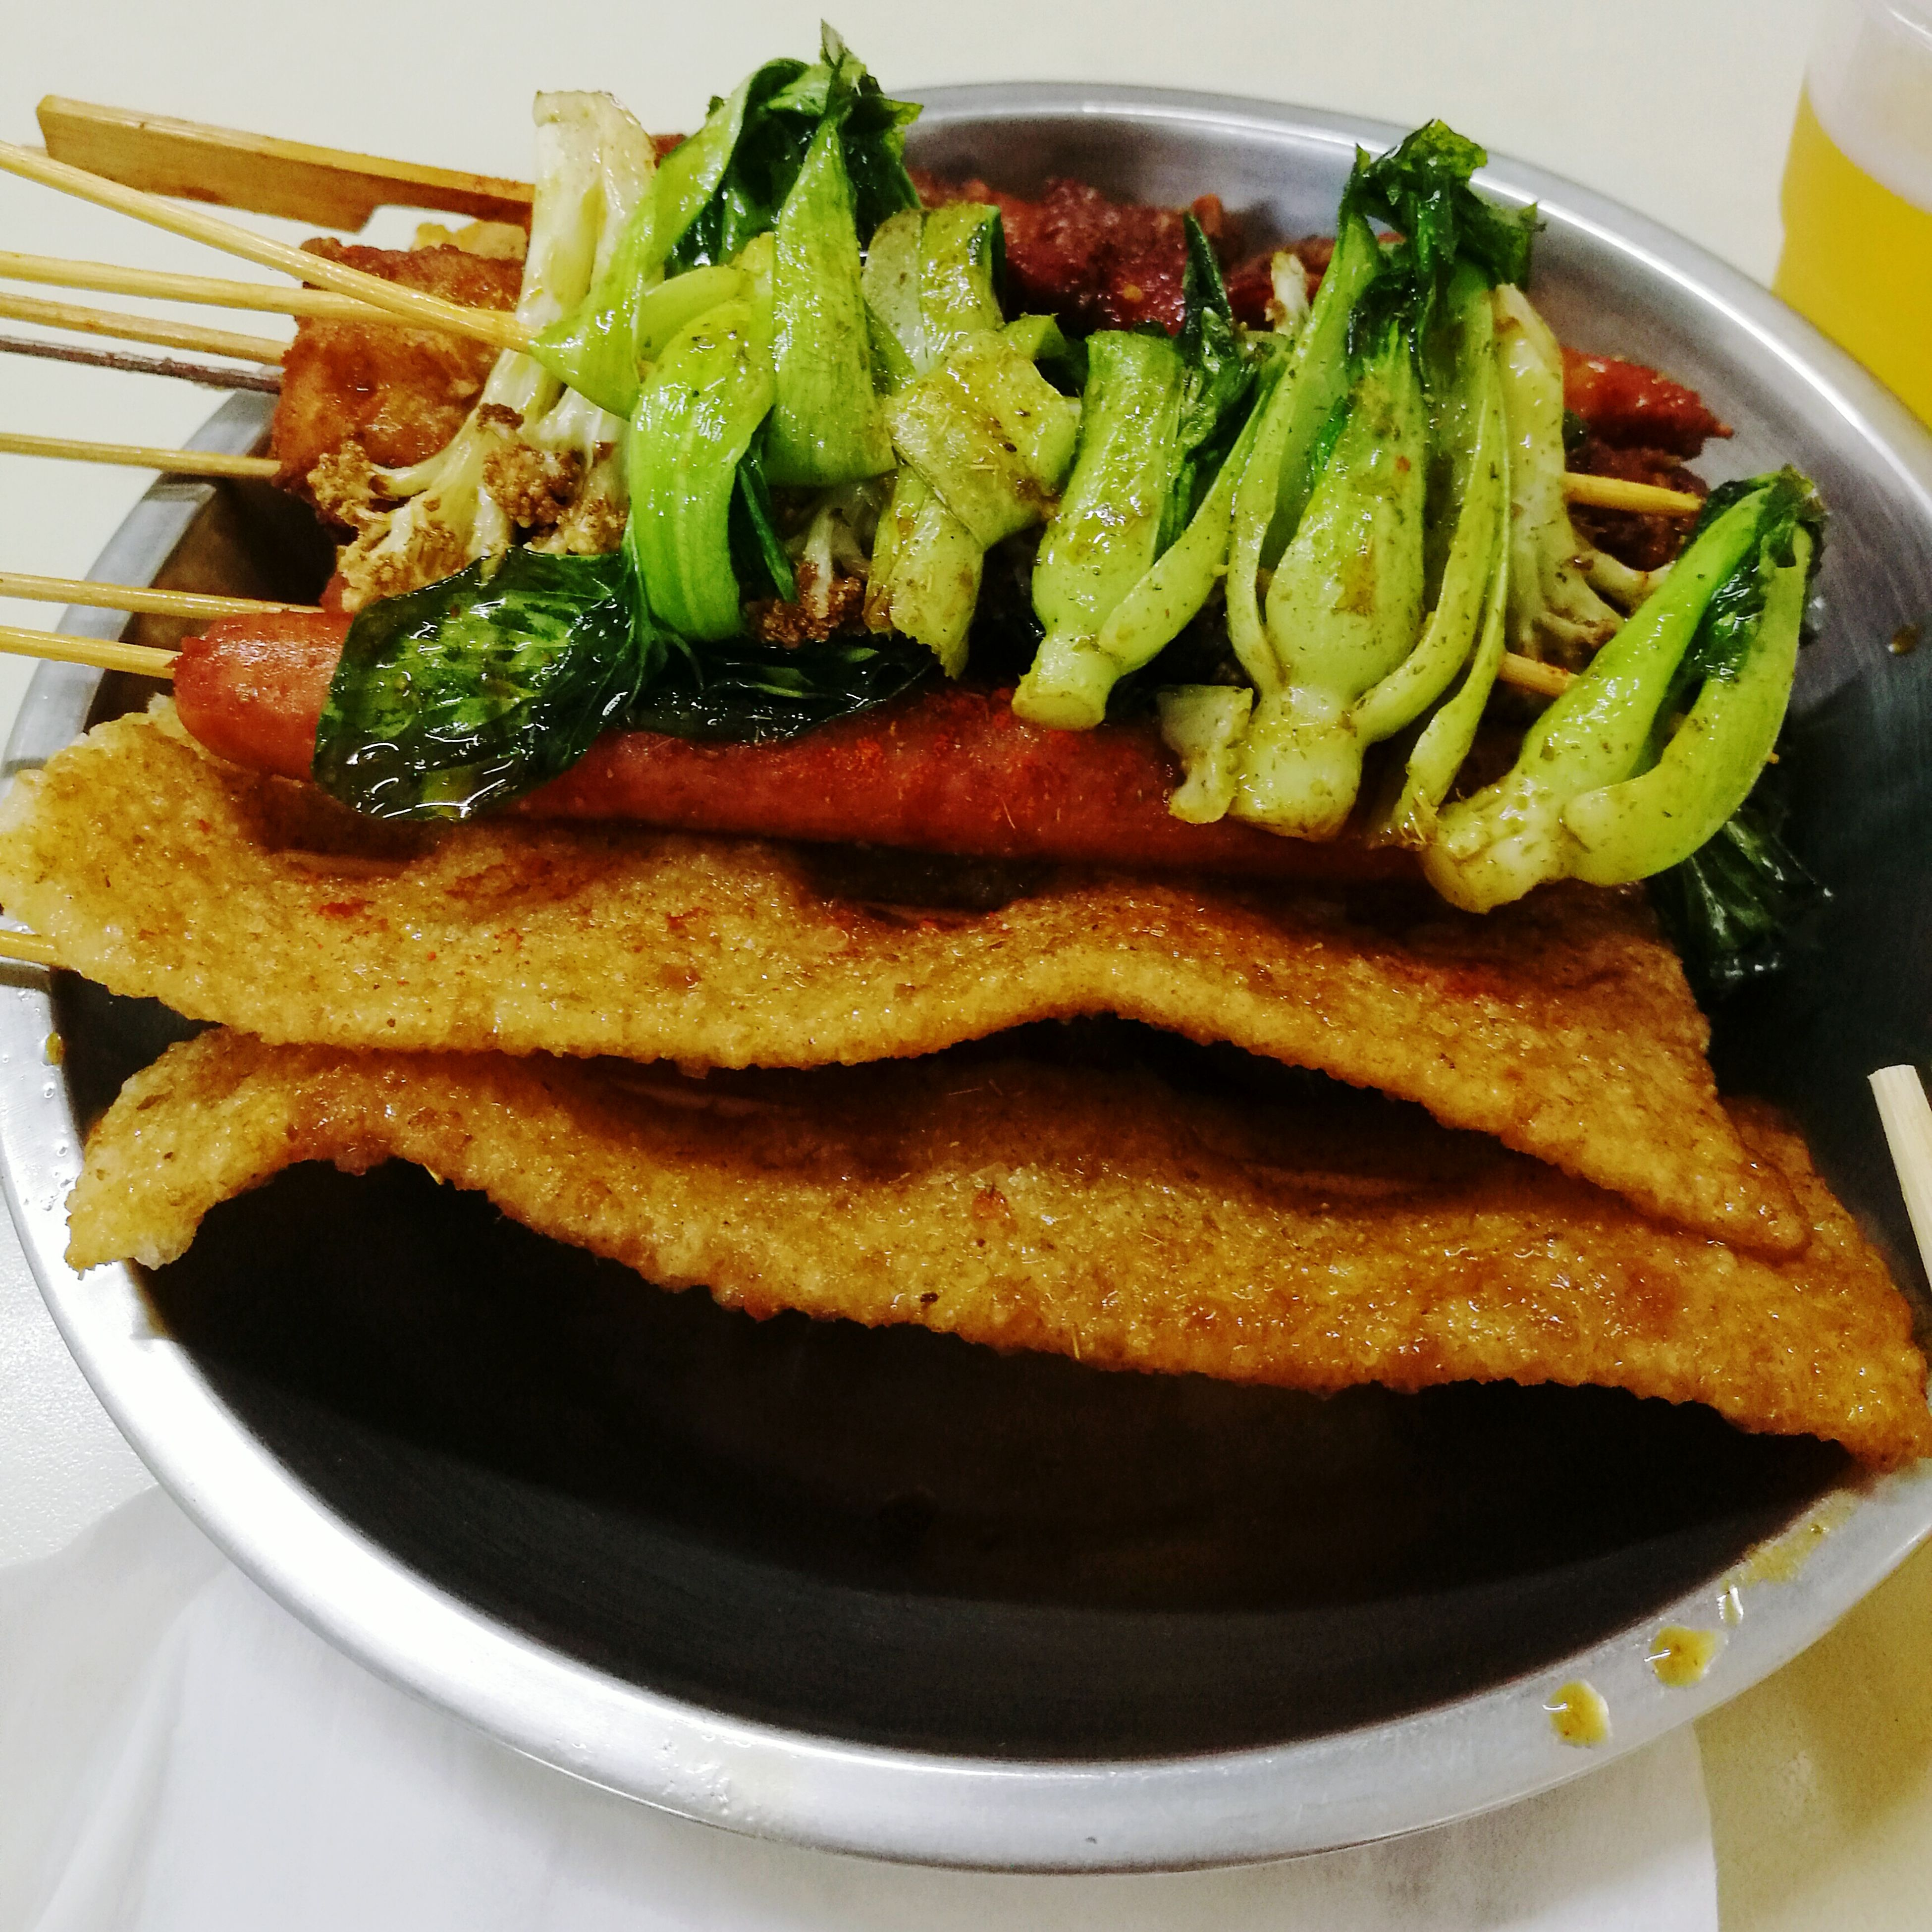 food and drink, food, freshness, plate, ready-to-eat, close-up, indoors, serving size, indulgence, meal, healthy eating, vegetable, temptation, broccoli, savory food, served, homemade, lunch, main course, cooked